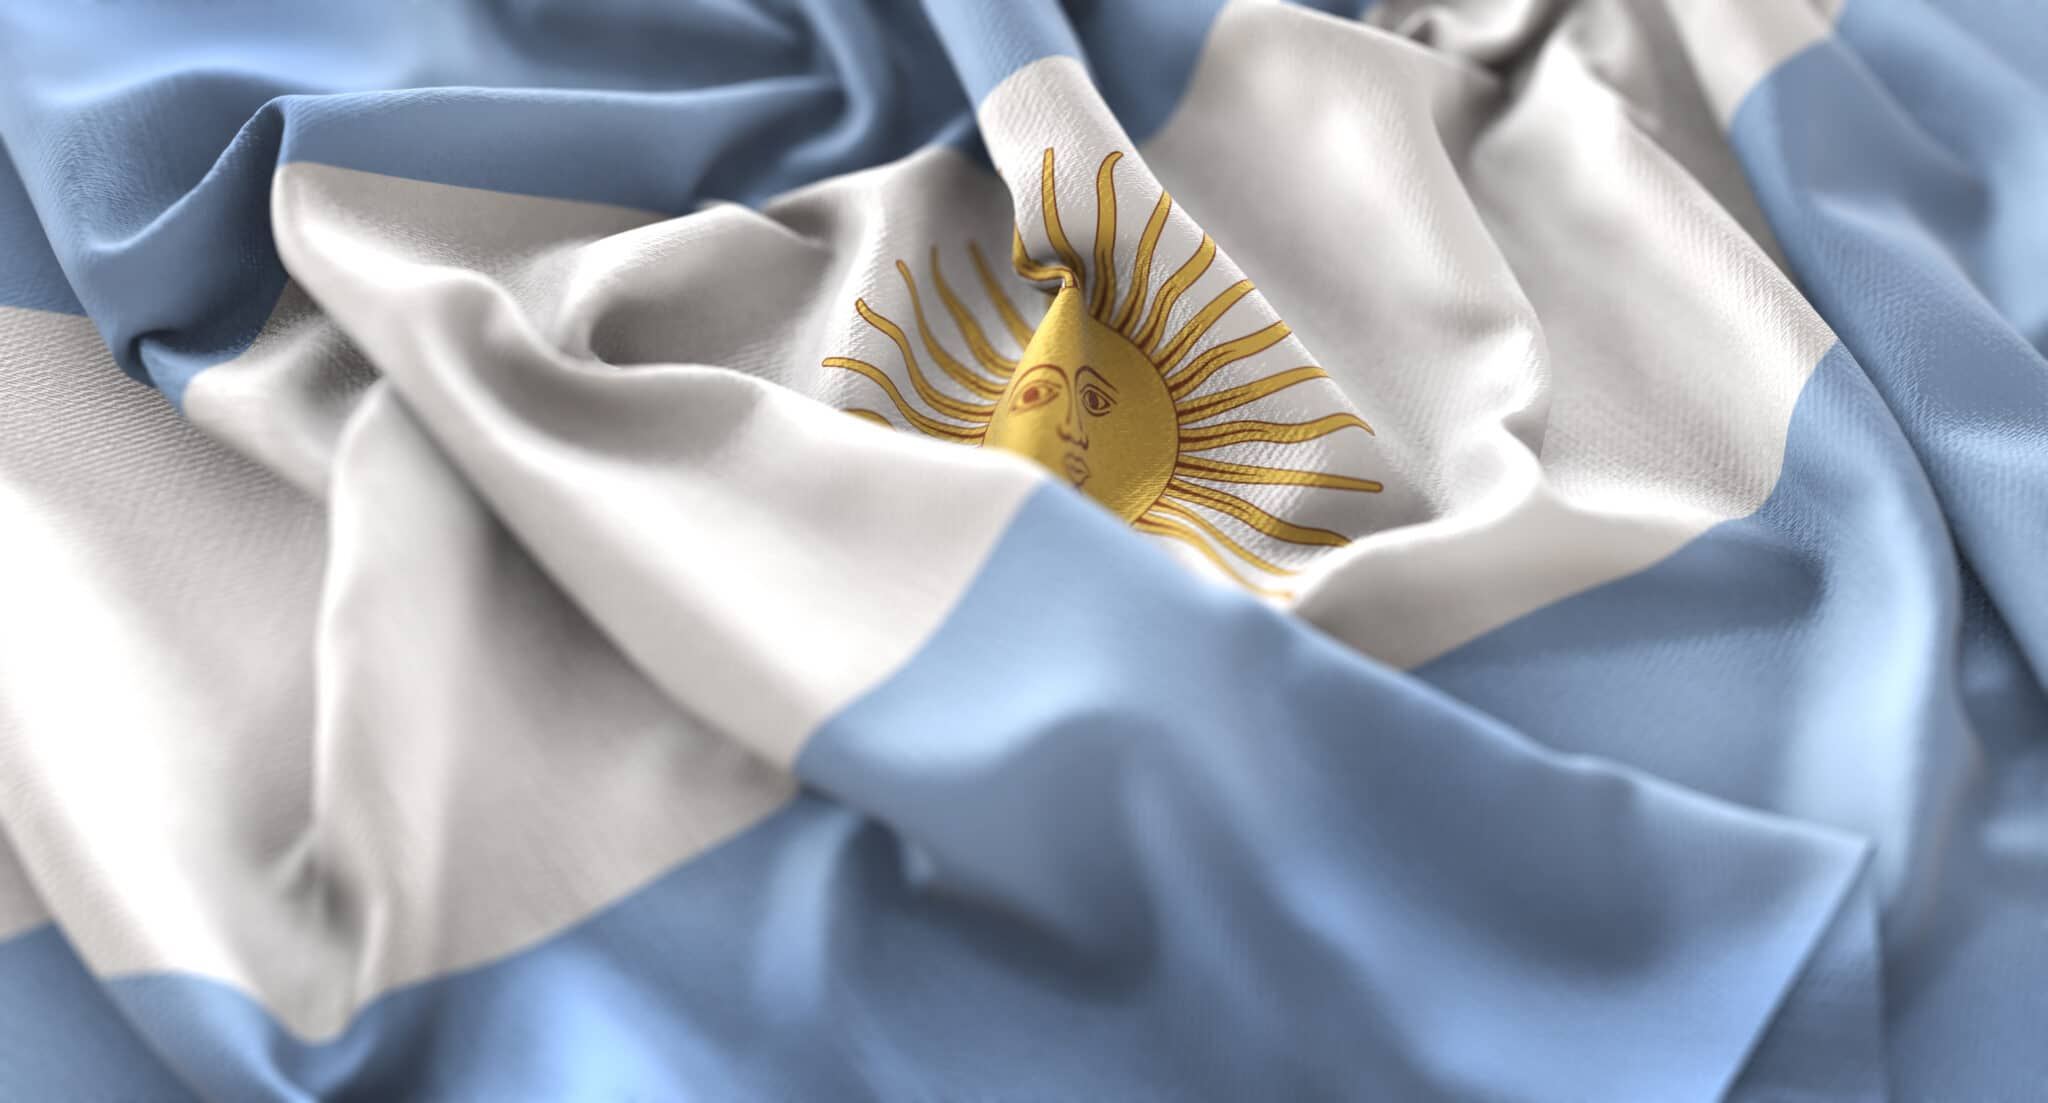 lawmaker in Argentina proposed Crypto Salary Bill